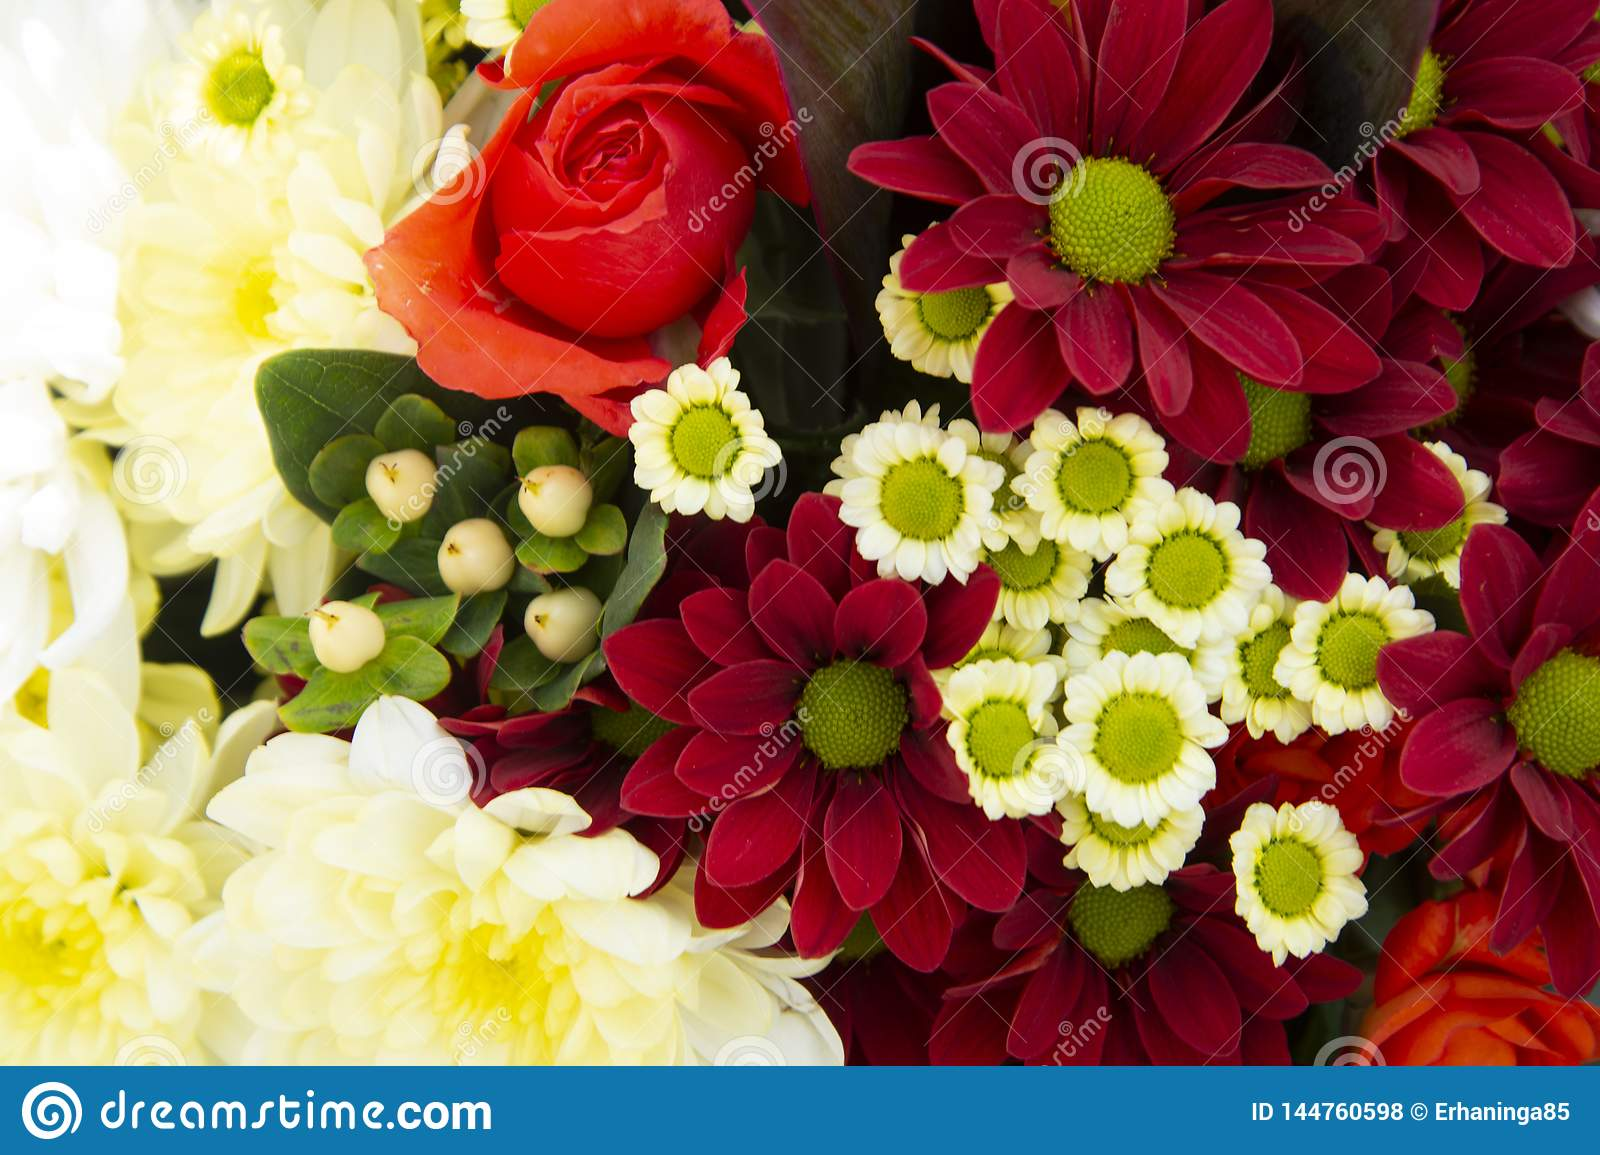 Colorful spring bouquet flowers with roses, chrysanthemum and camomile. Beautiful flower gift. Template for design. Copy space